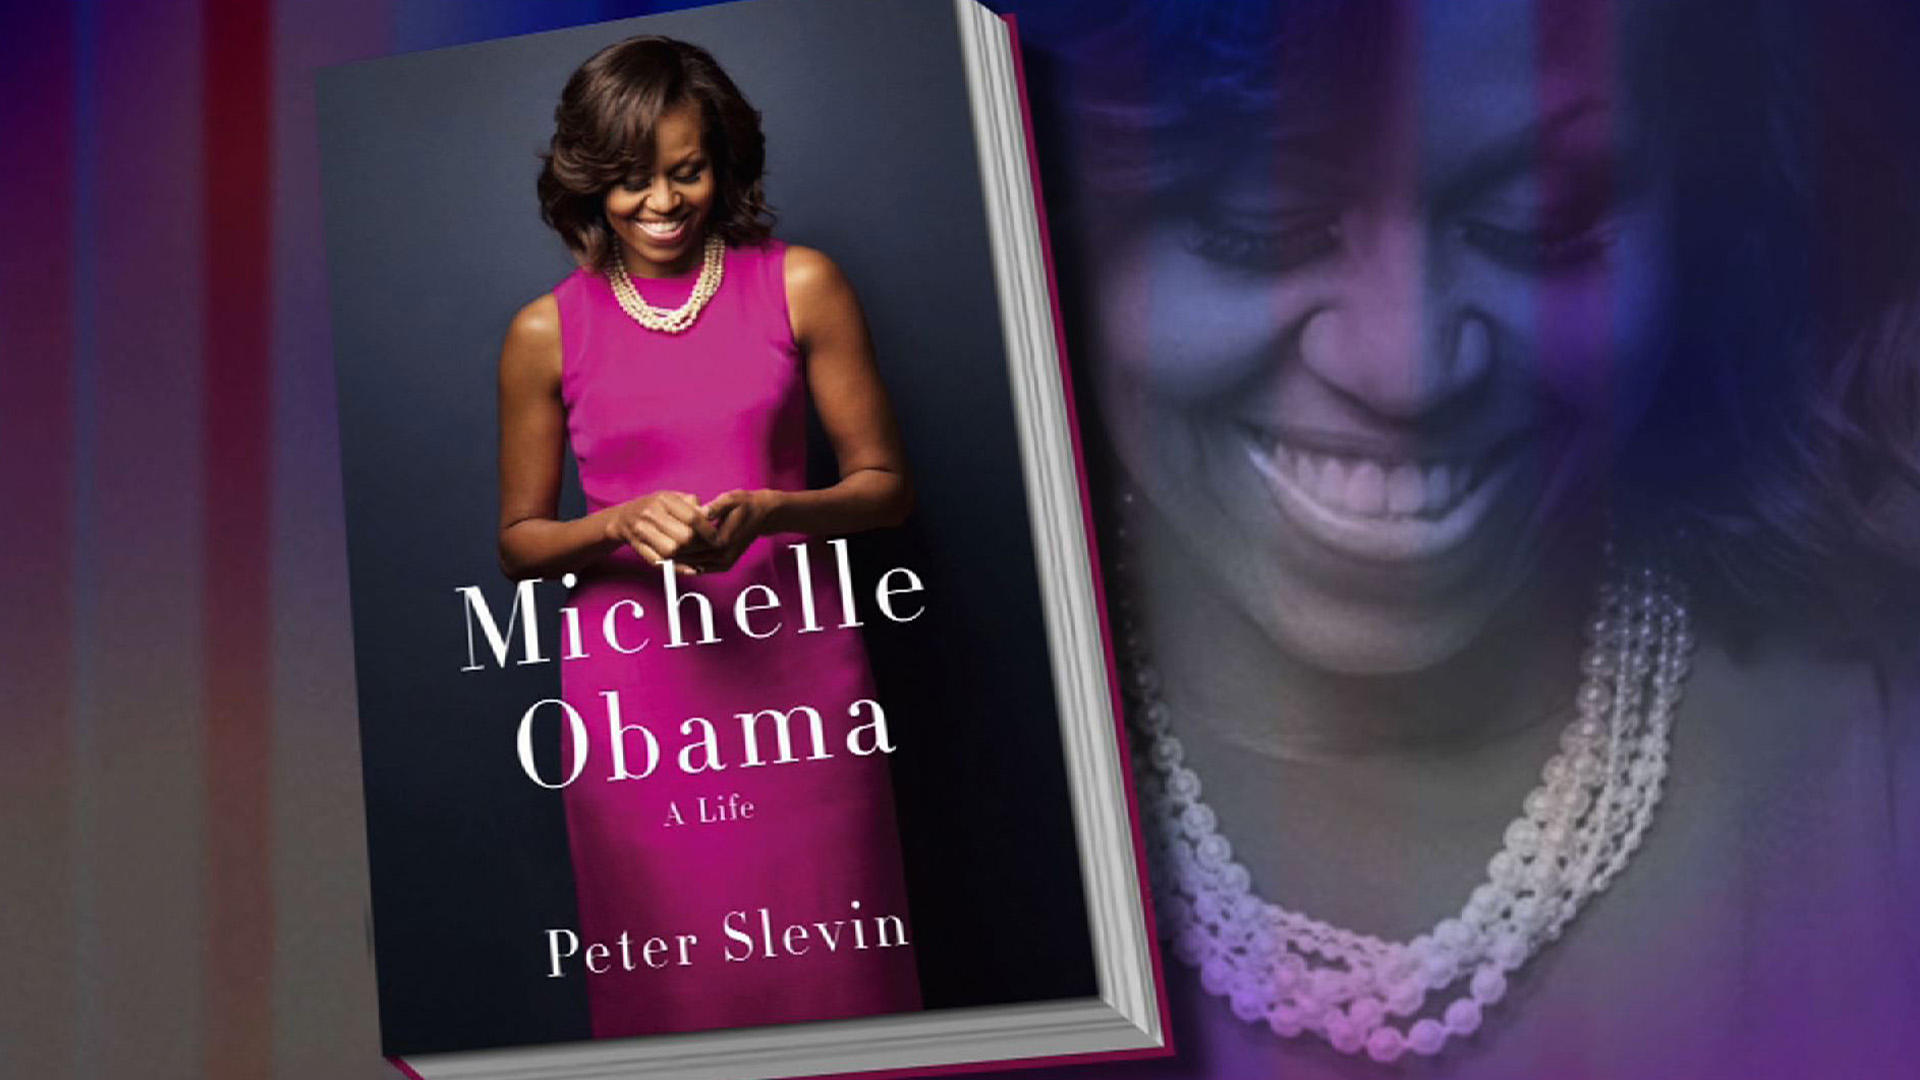 How Michelle Obama's upbringing shaped her advocacy | PBS NewsHour